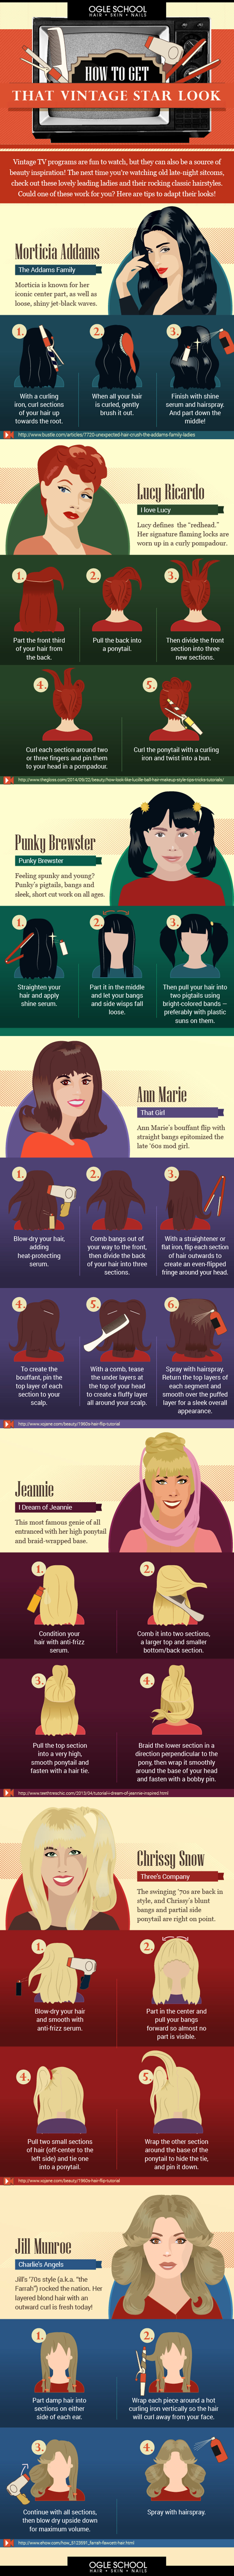 How to Get a Retro Star Look - Fashion Infographic